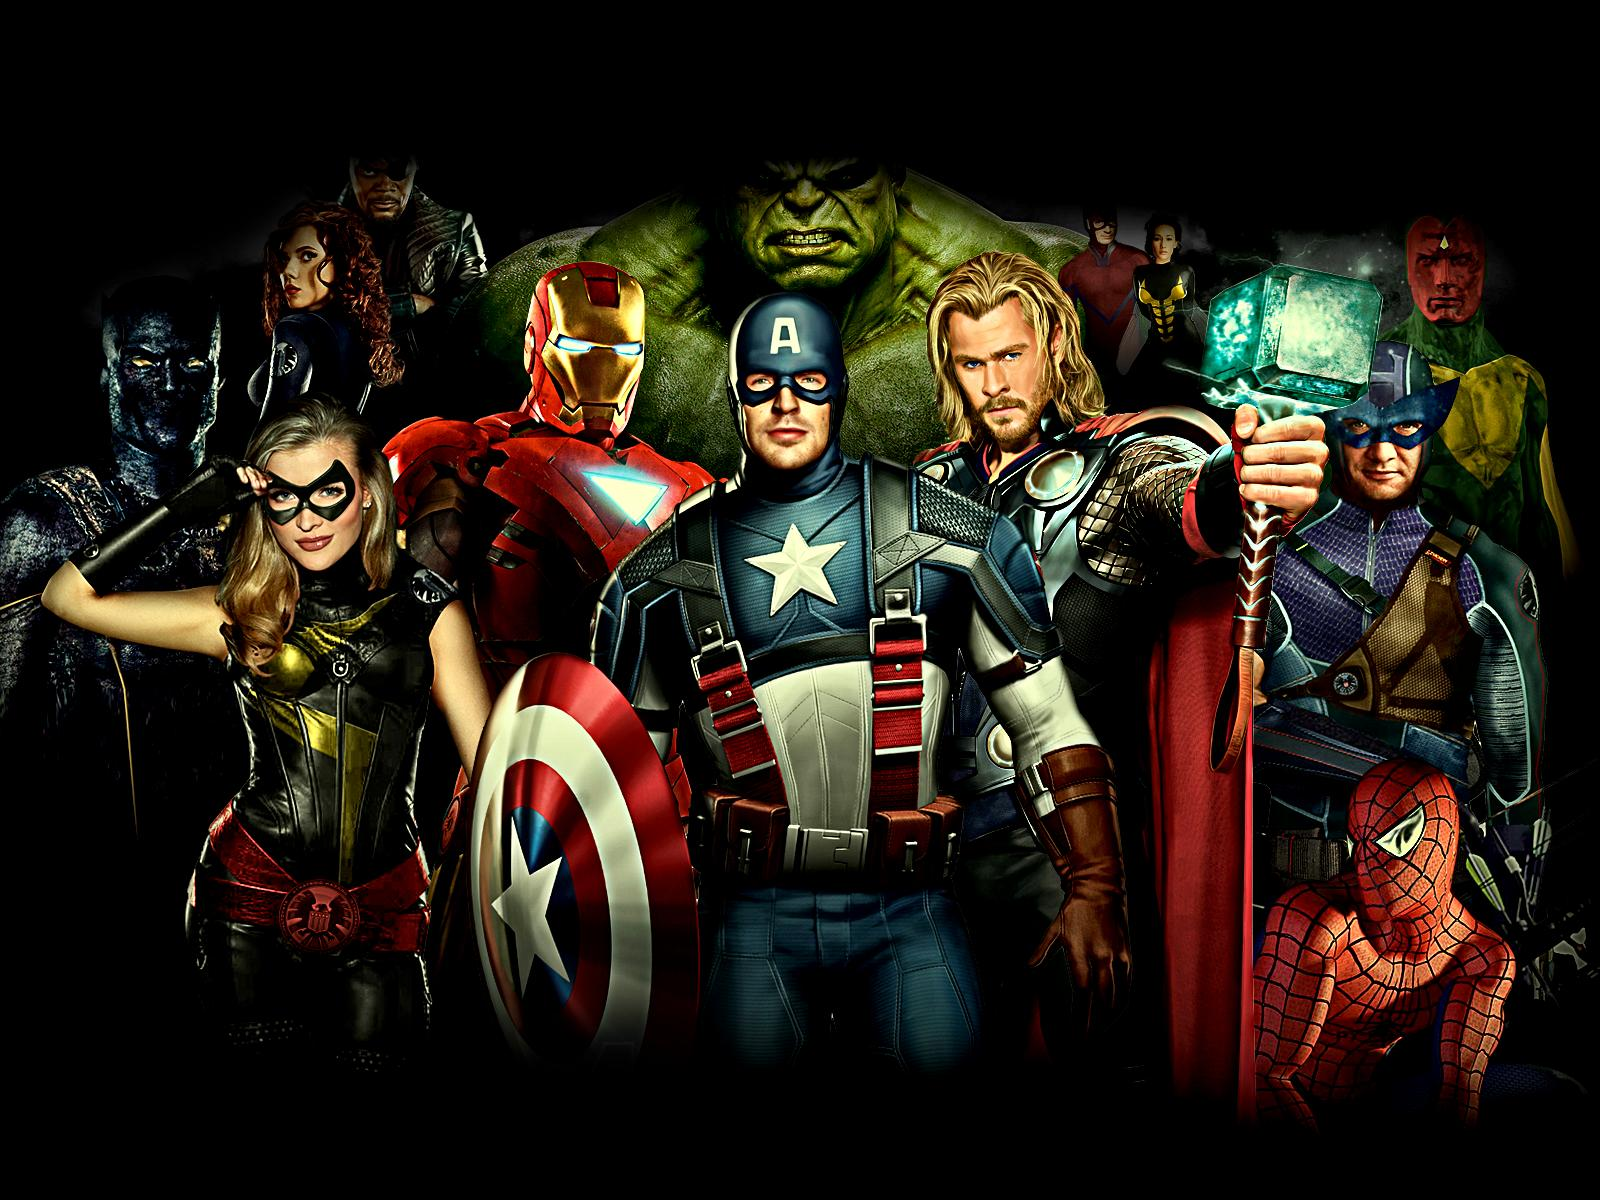 download hd wallpapers of avengers - sf wallpaper